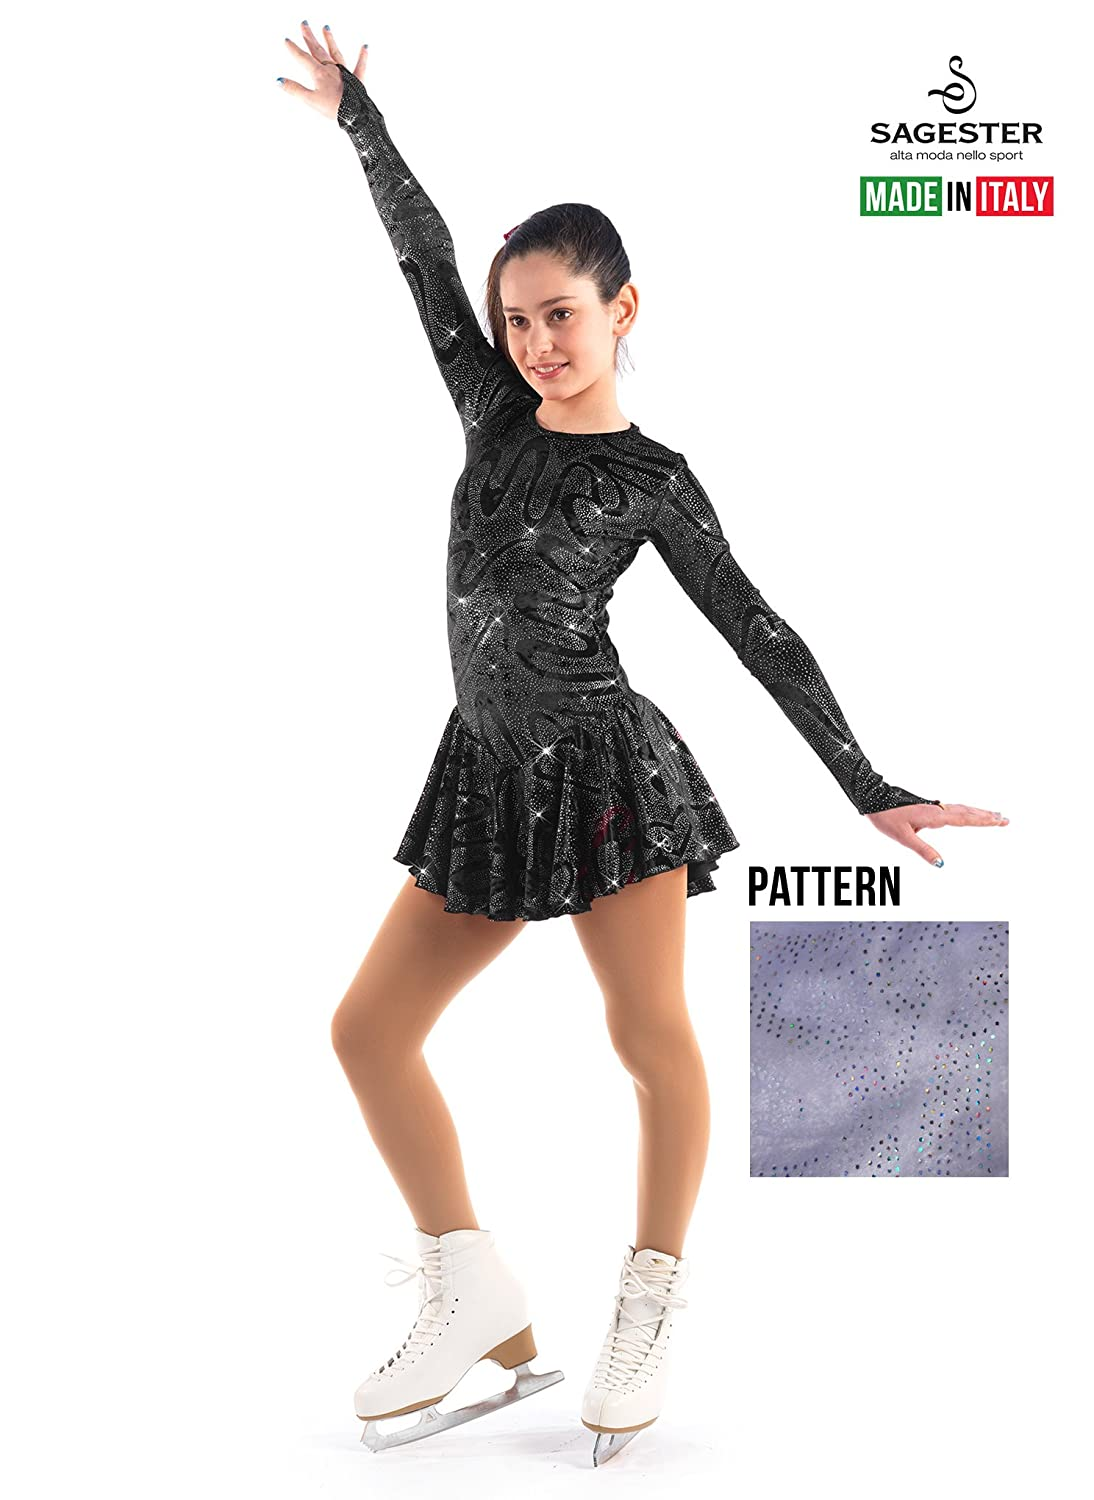 Roller skates olx